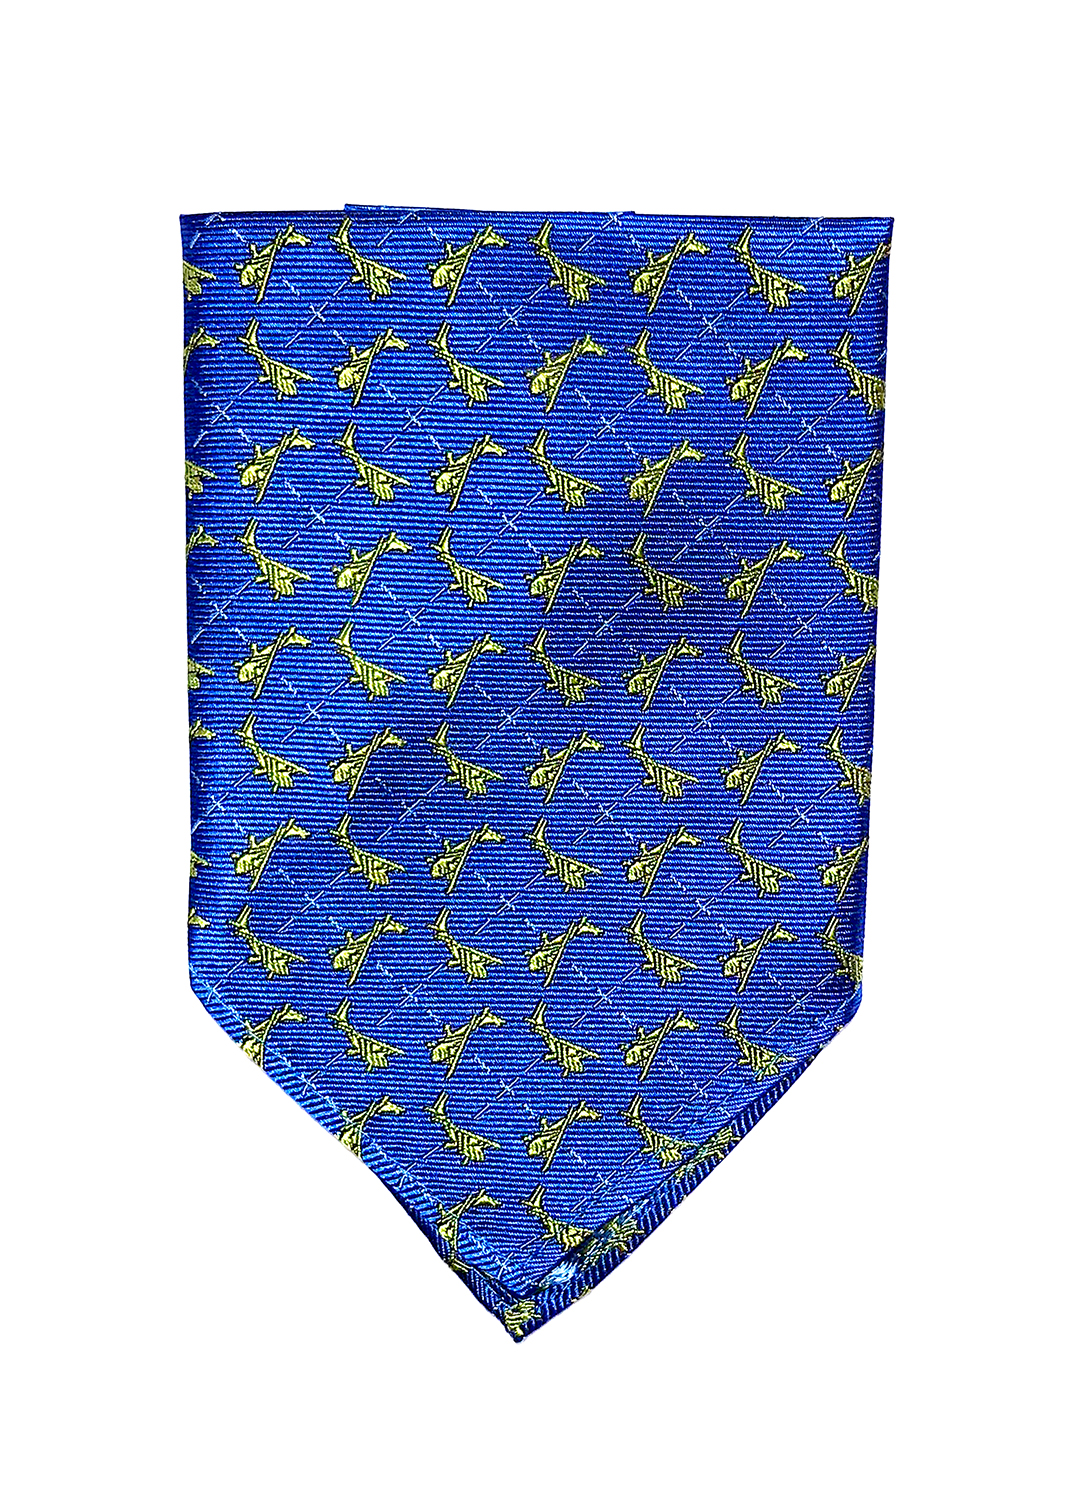 doppeldecker design aviation aircraft airplane pocket square cessna